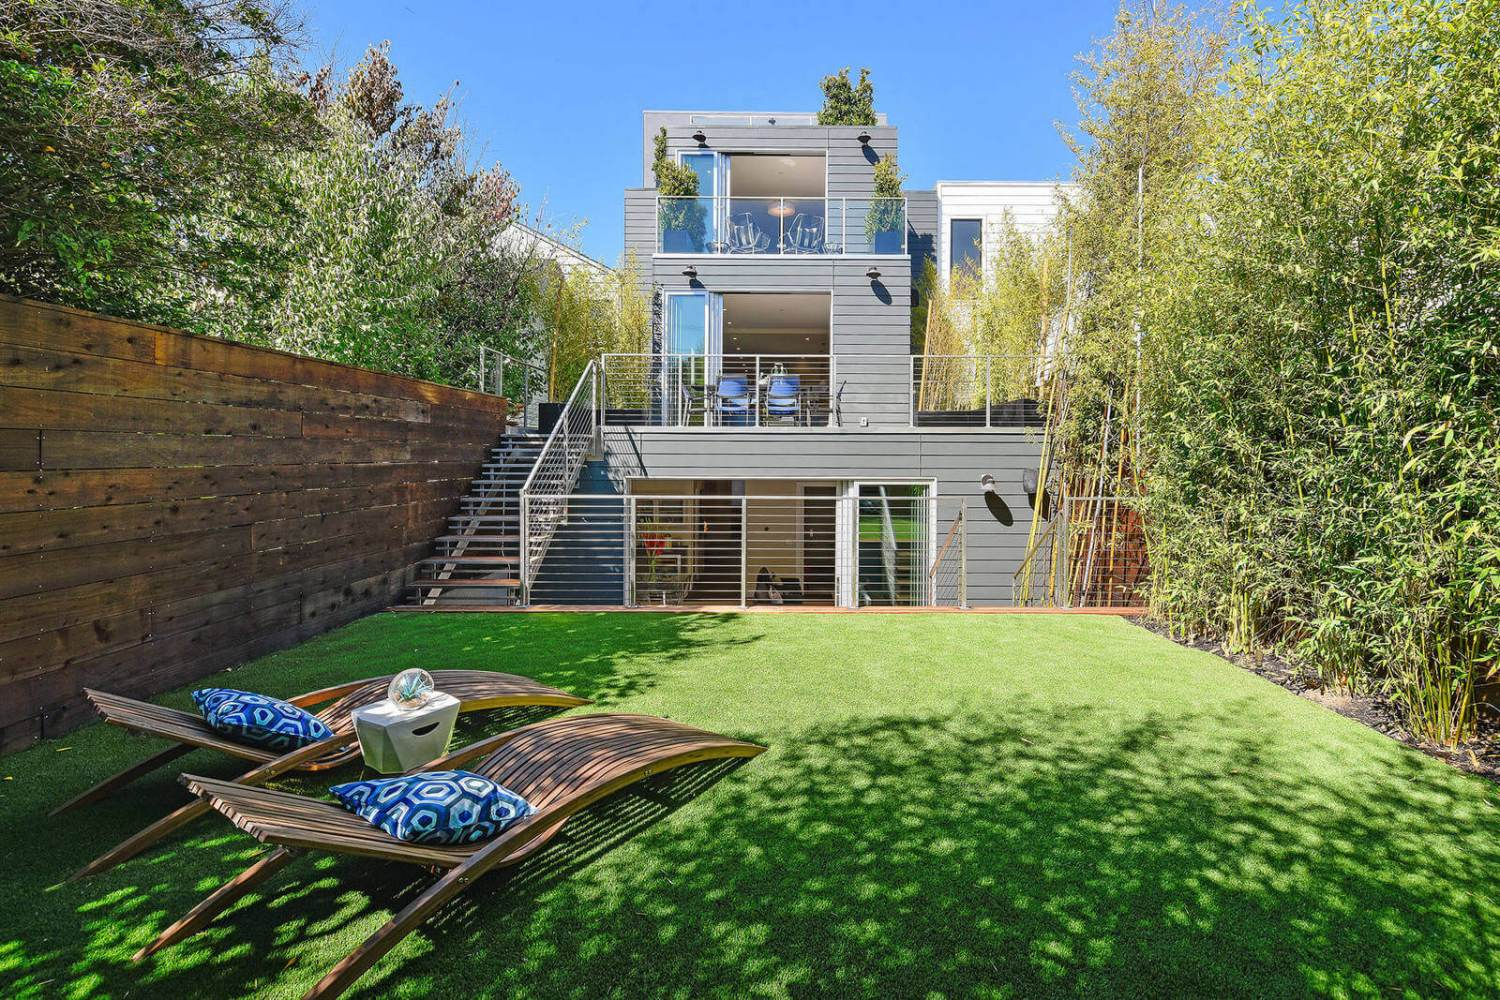 Modern home with backyard and decks with cable railings